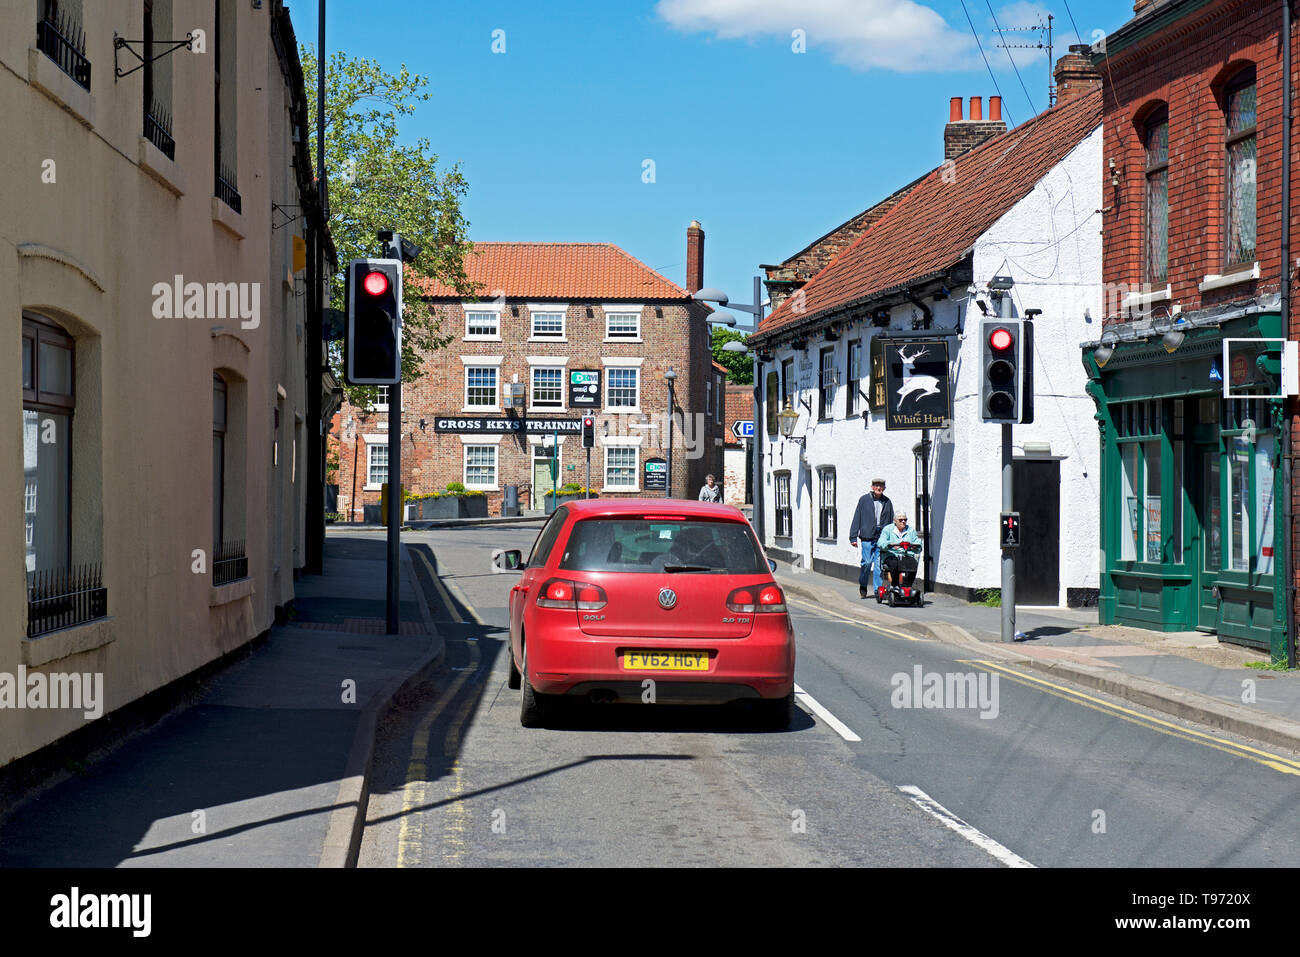 Car in the village of Crowle, North Lincolnshire, England UK - Stock Image